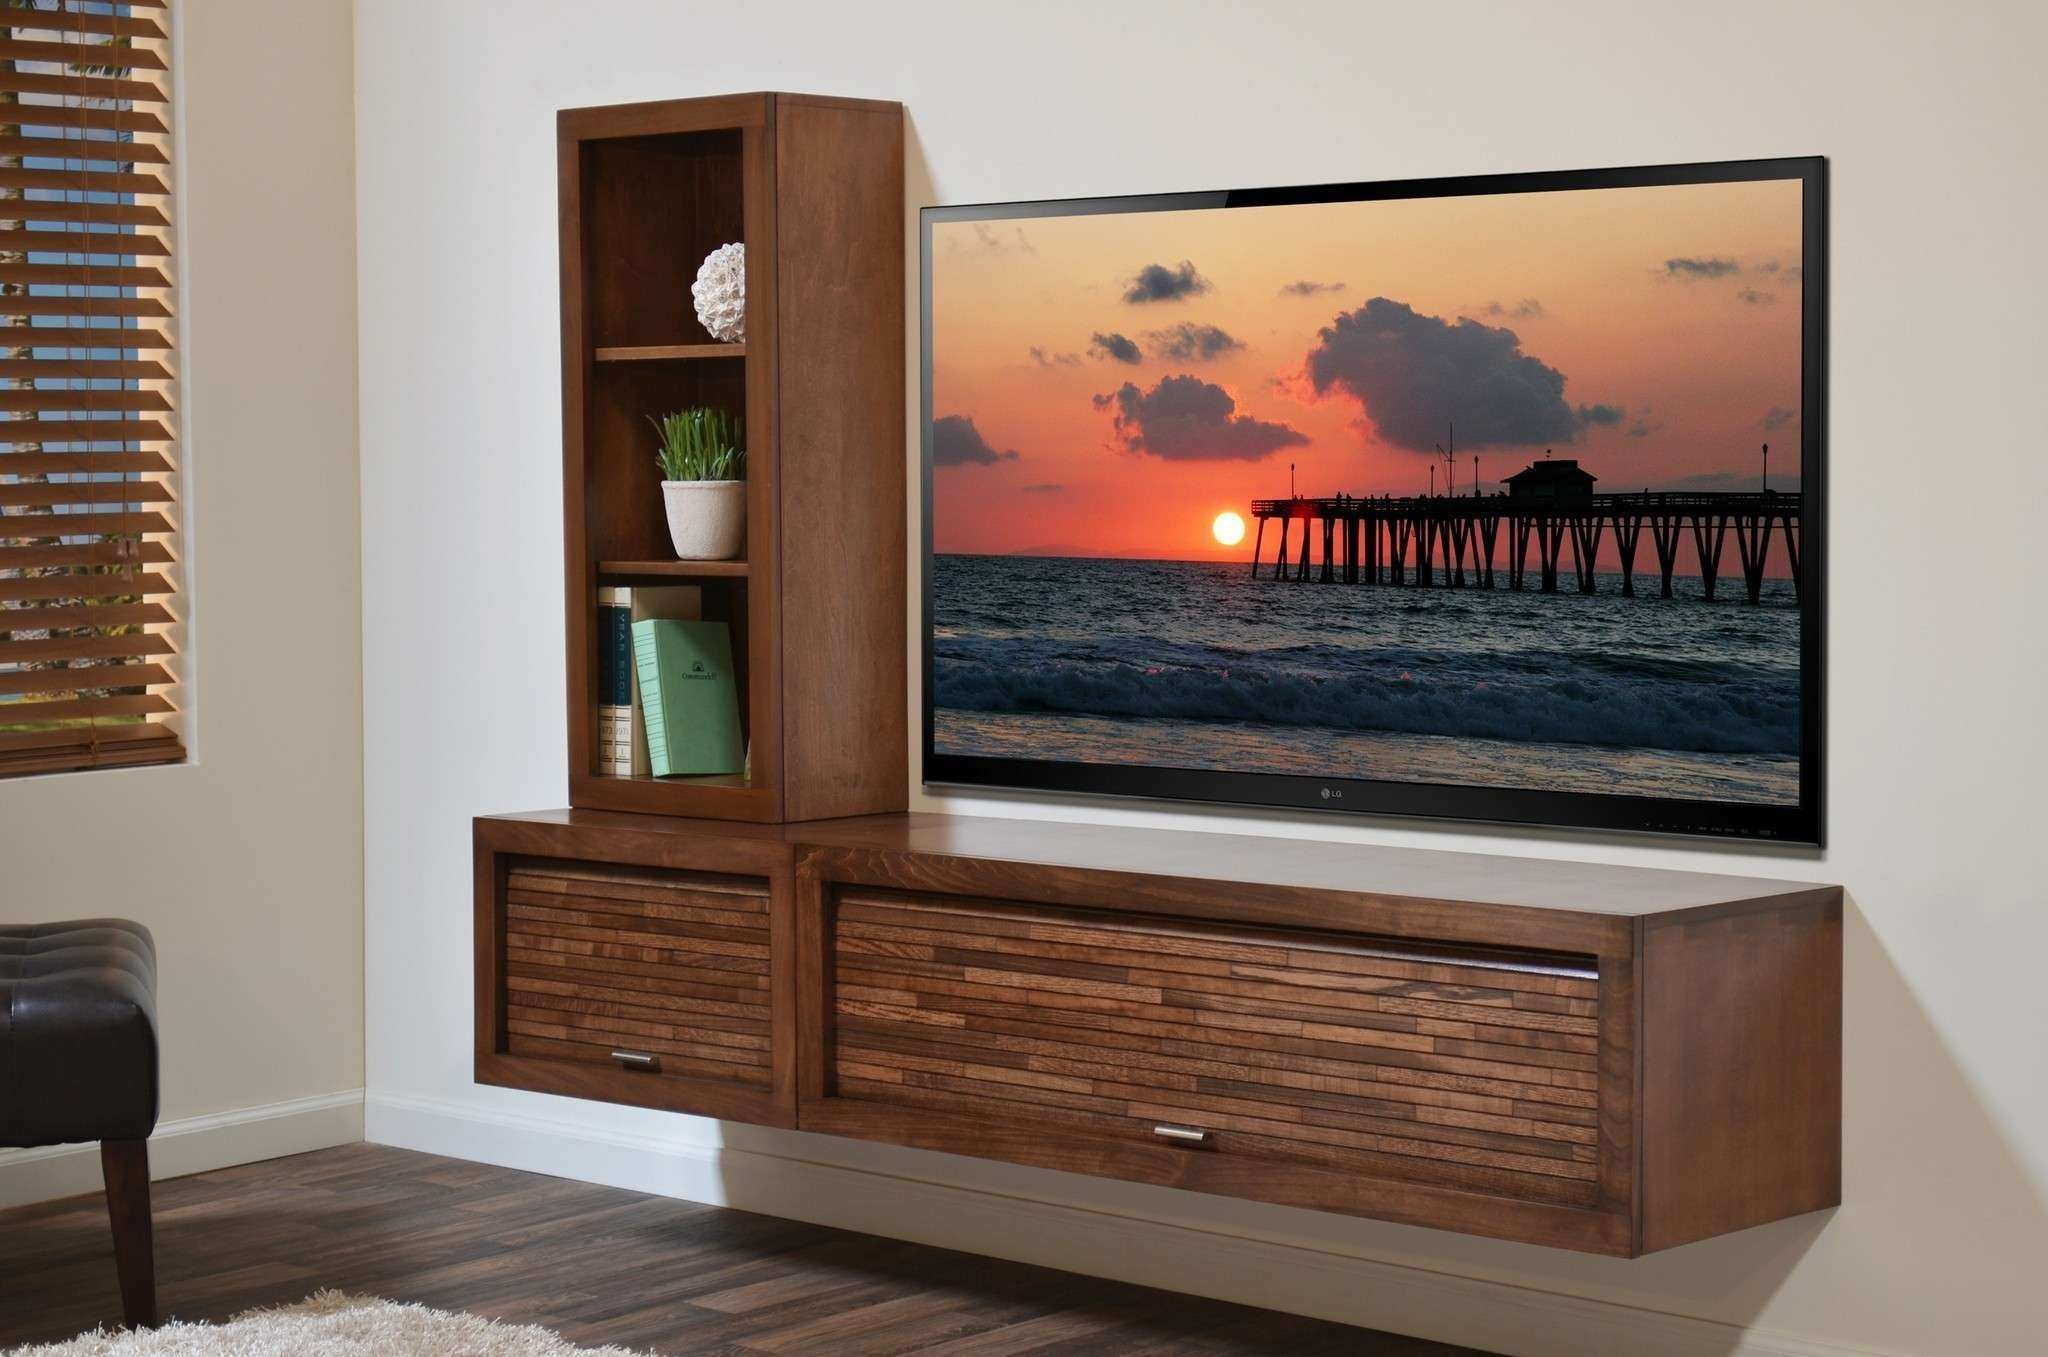 Inspirational Wall Mounted Flat Screen Tv Cabinets • The Ignite Show